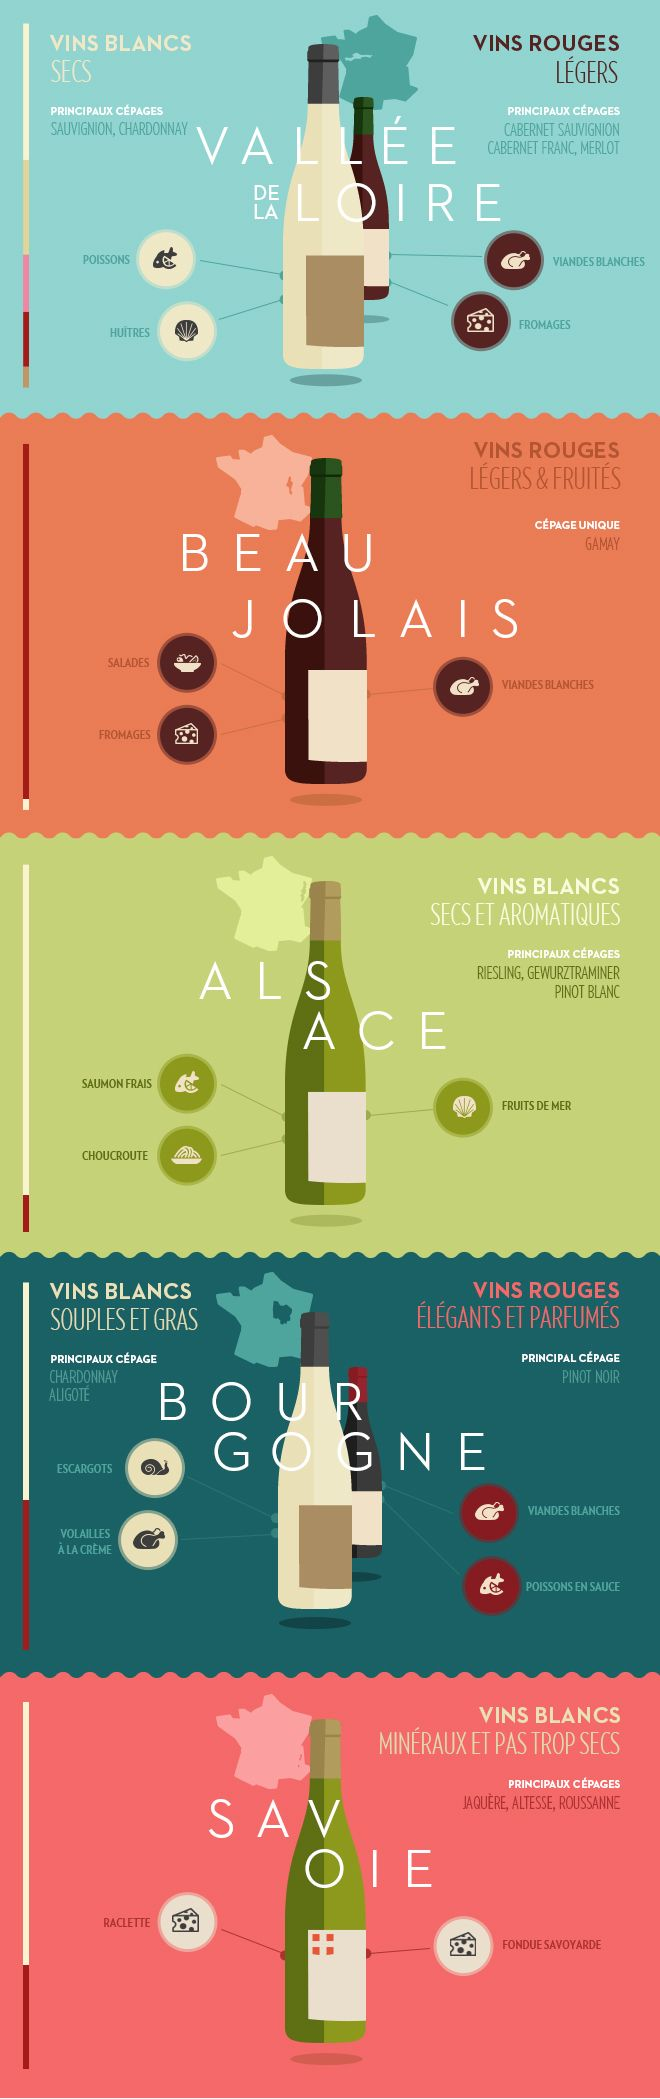 agamy aime ces illustrations #wine #vin #infographies   sources : toutlevin.com